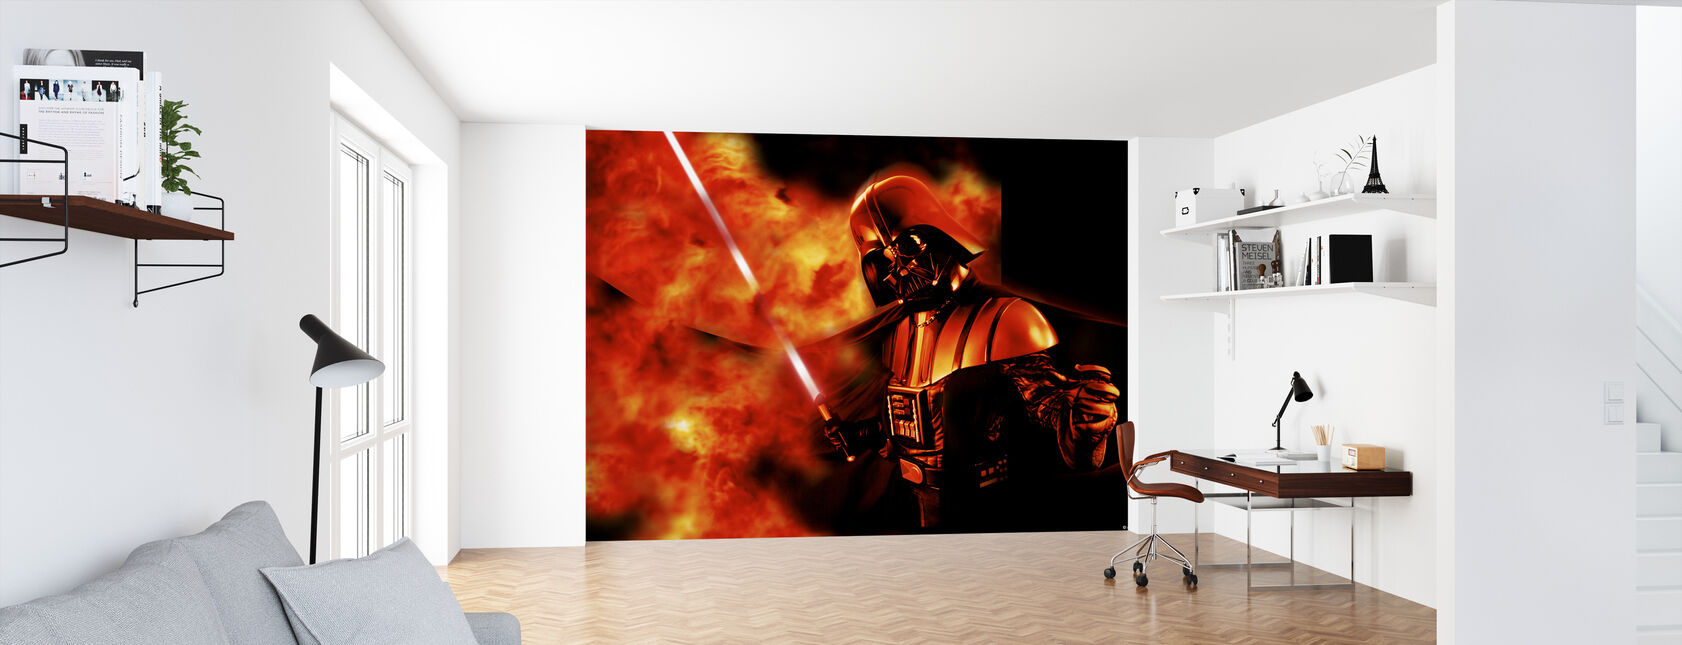 Star Wars - Darth Vader eksplosion 2 - Tapet - Kontor